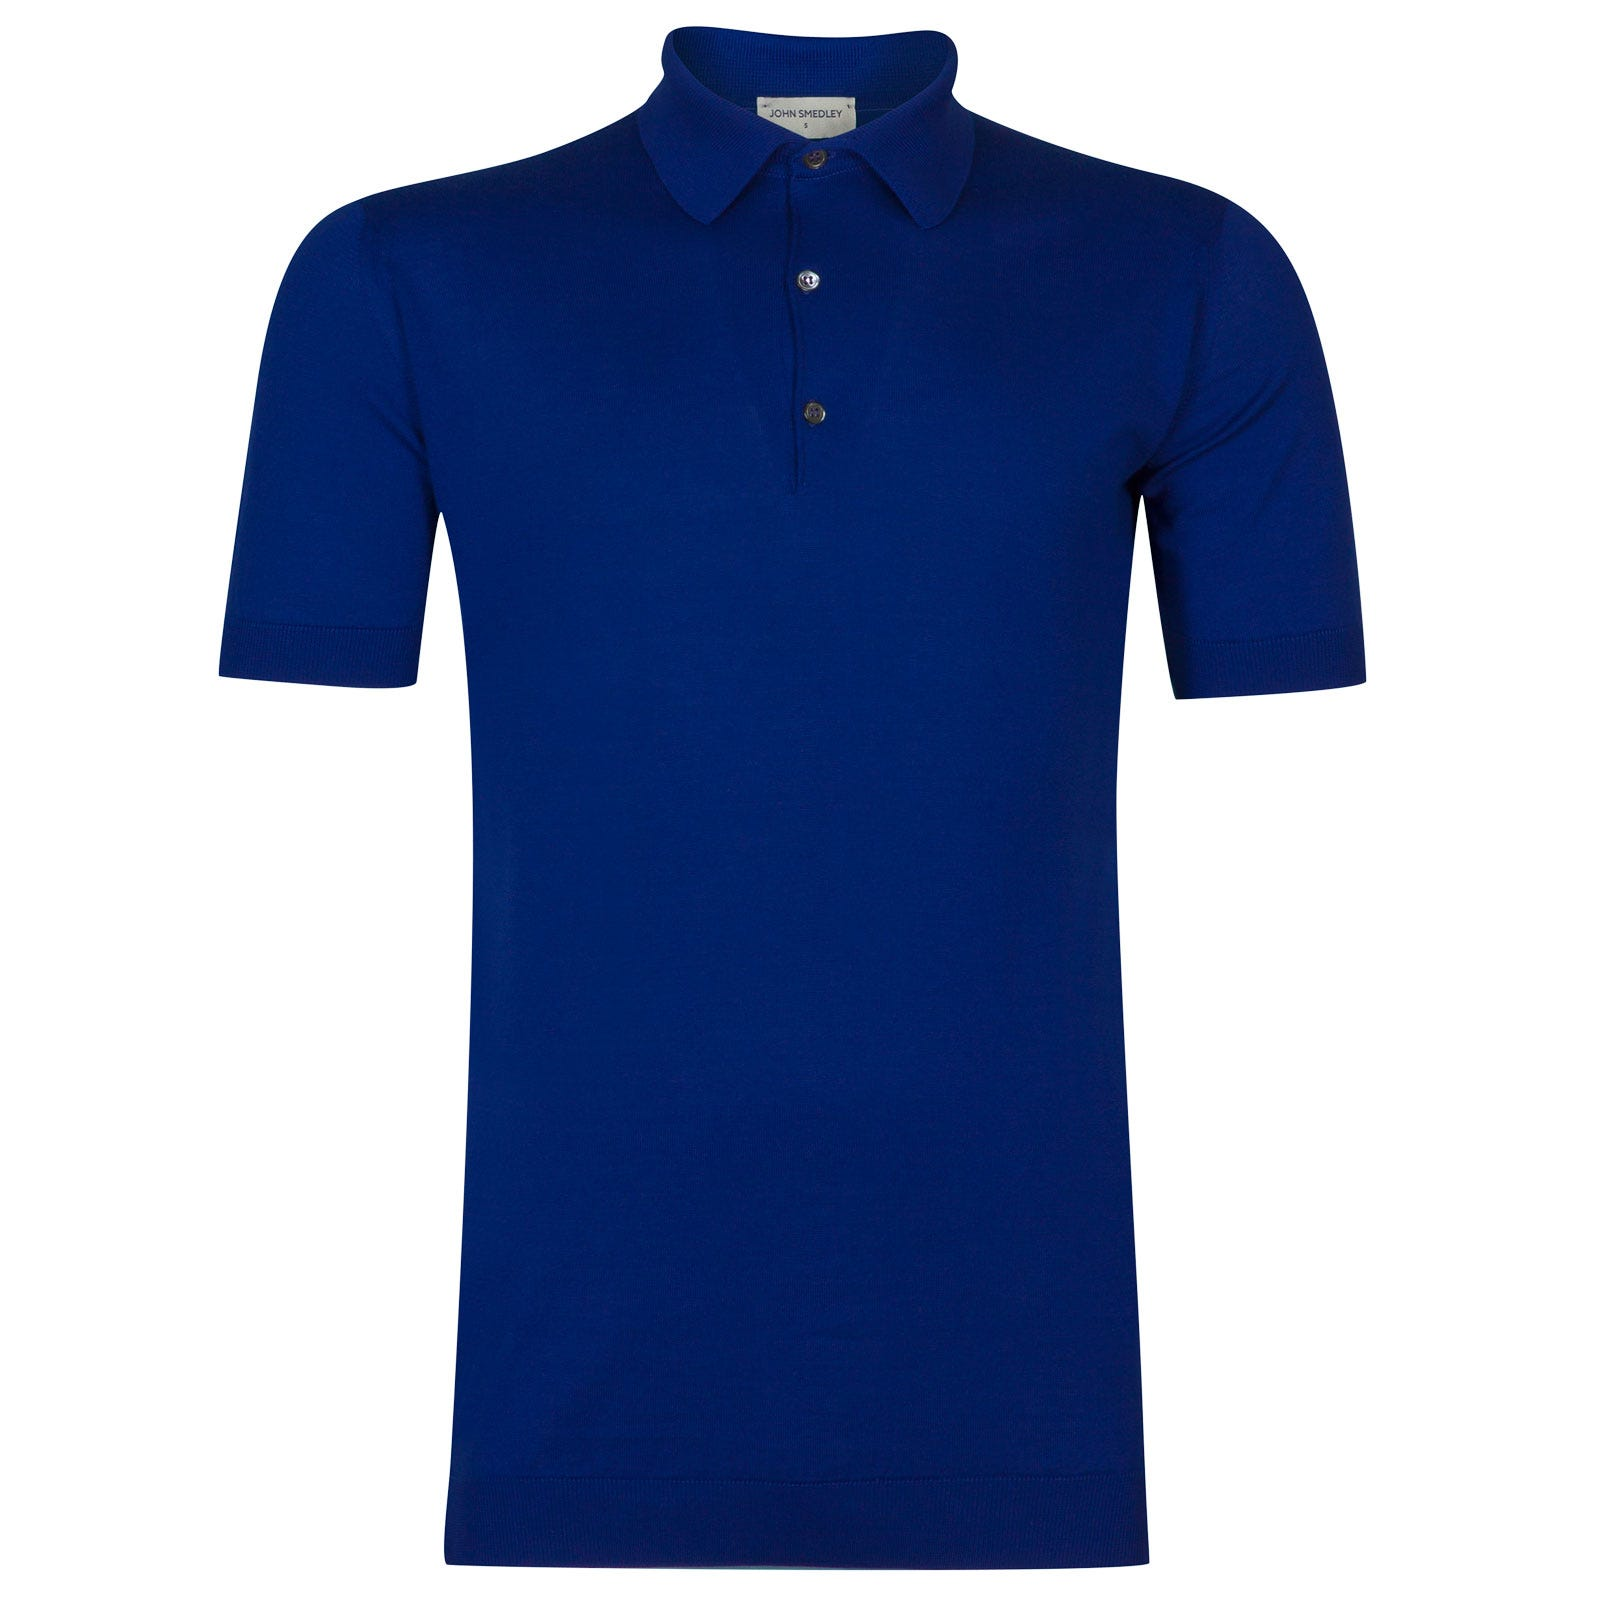 John Smedley adrian Sea Island Cotton Shirt in Coniston Blue-XL